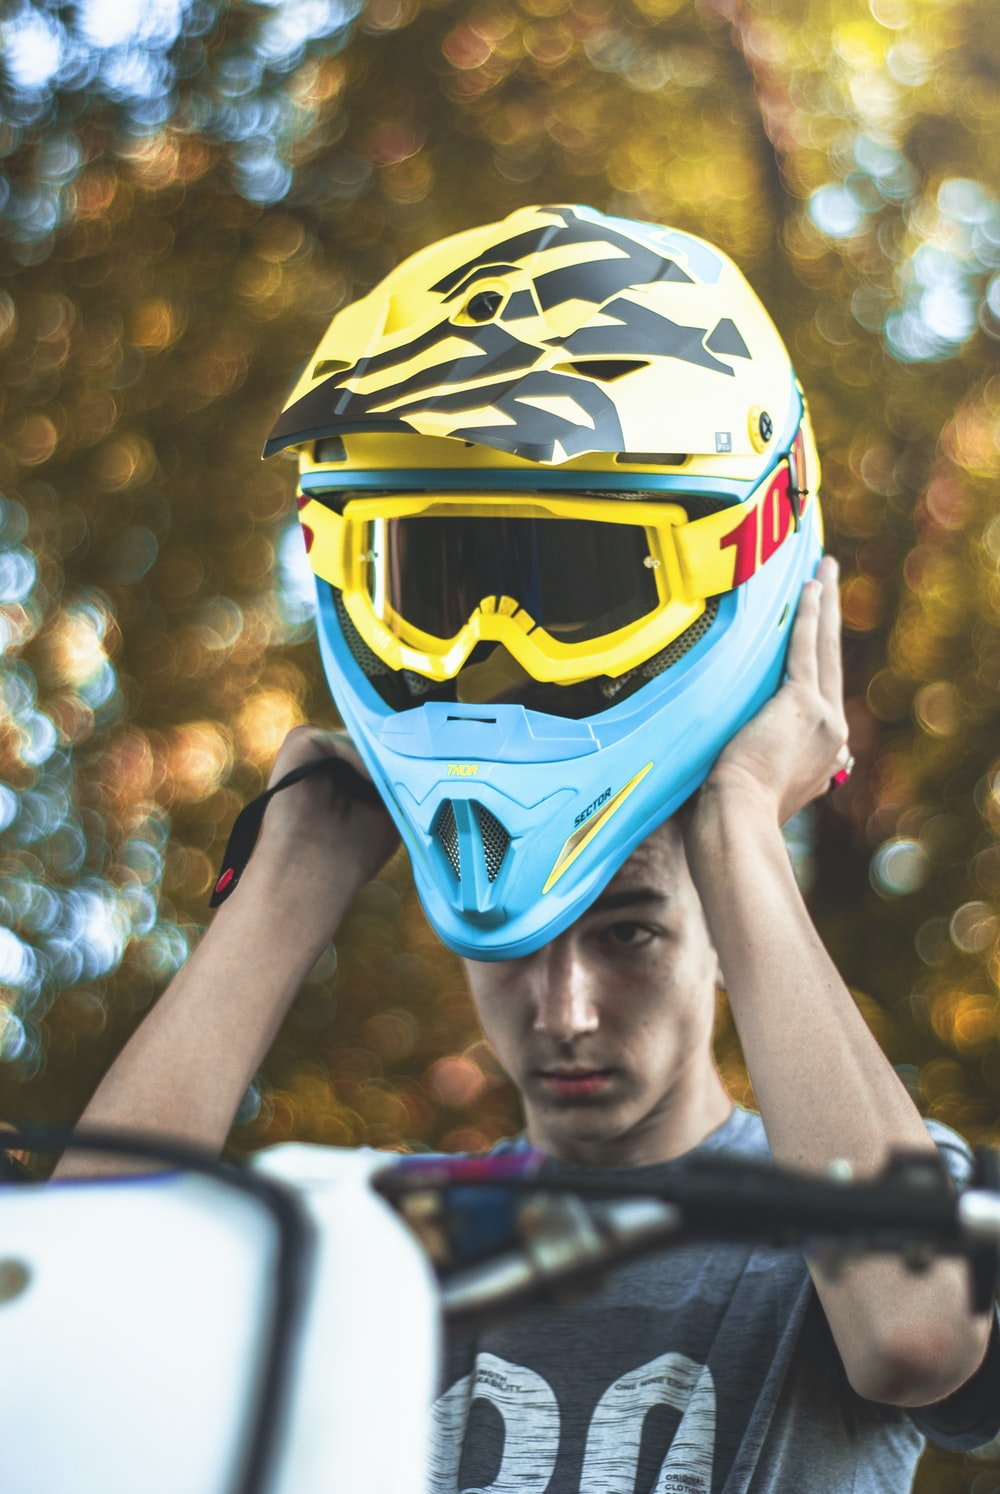 man holding yellow and blue motocross helmet